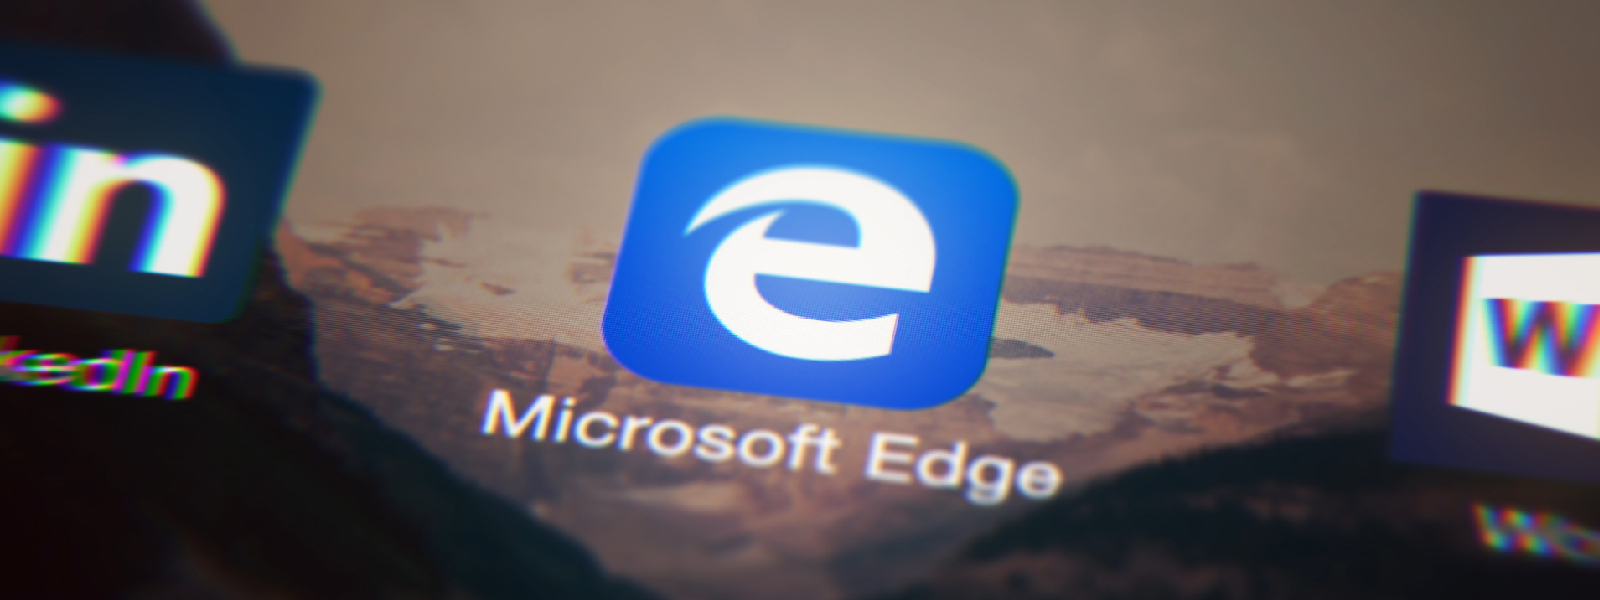 A transparent Microsoft Edge app tile